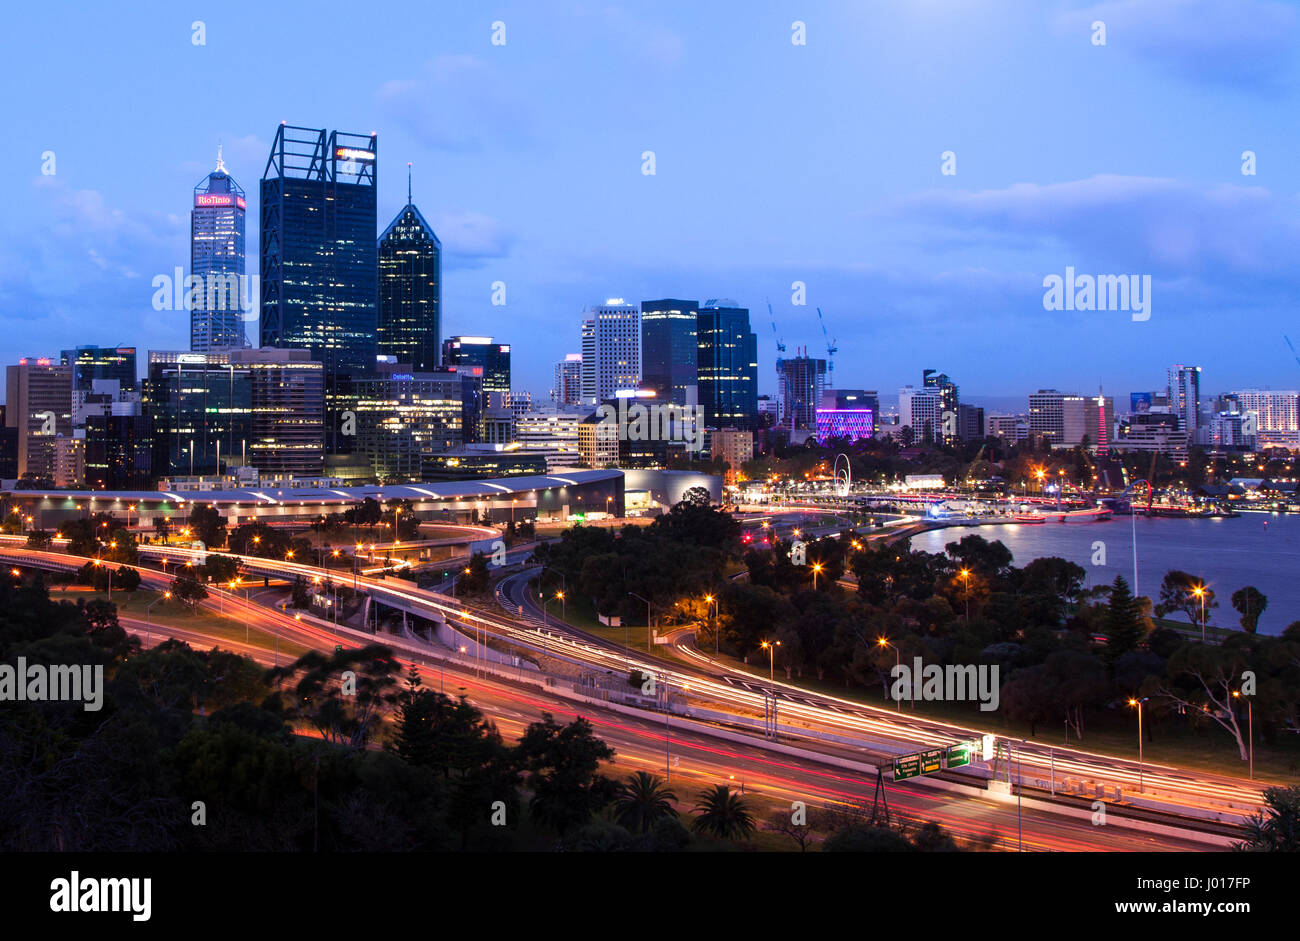 The City of Perth at Dusk, Australia - Stock Image